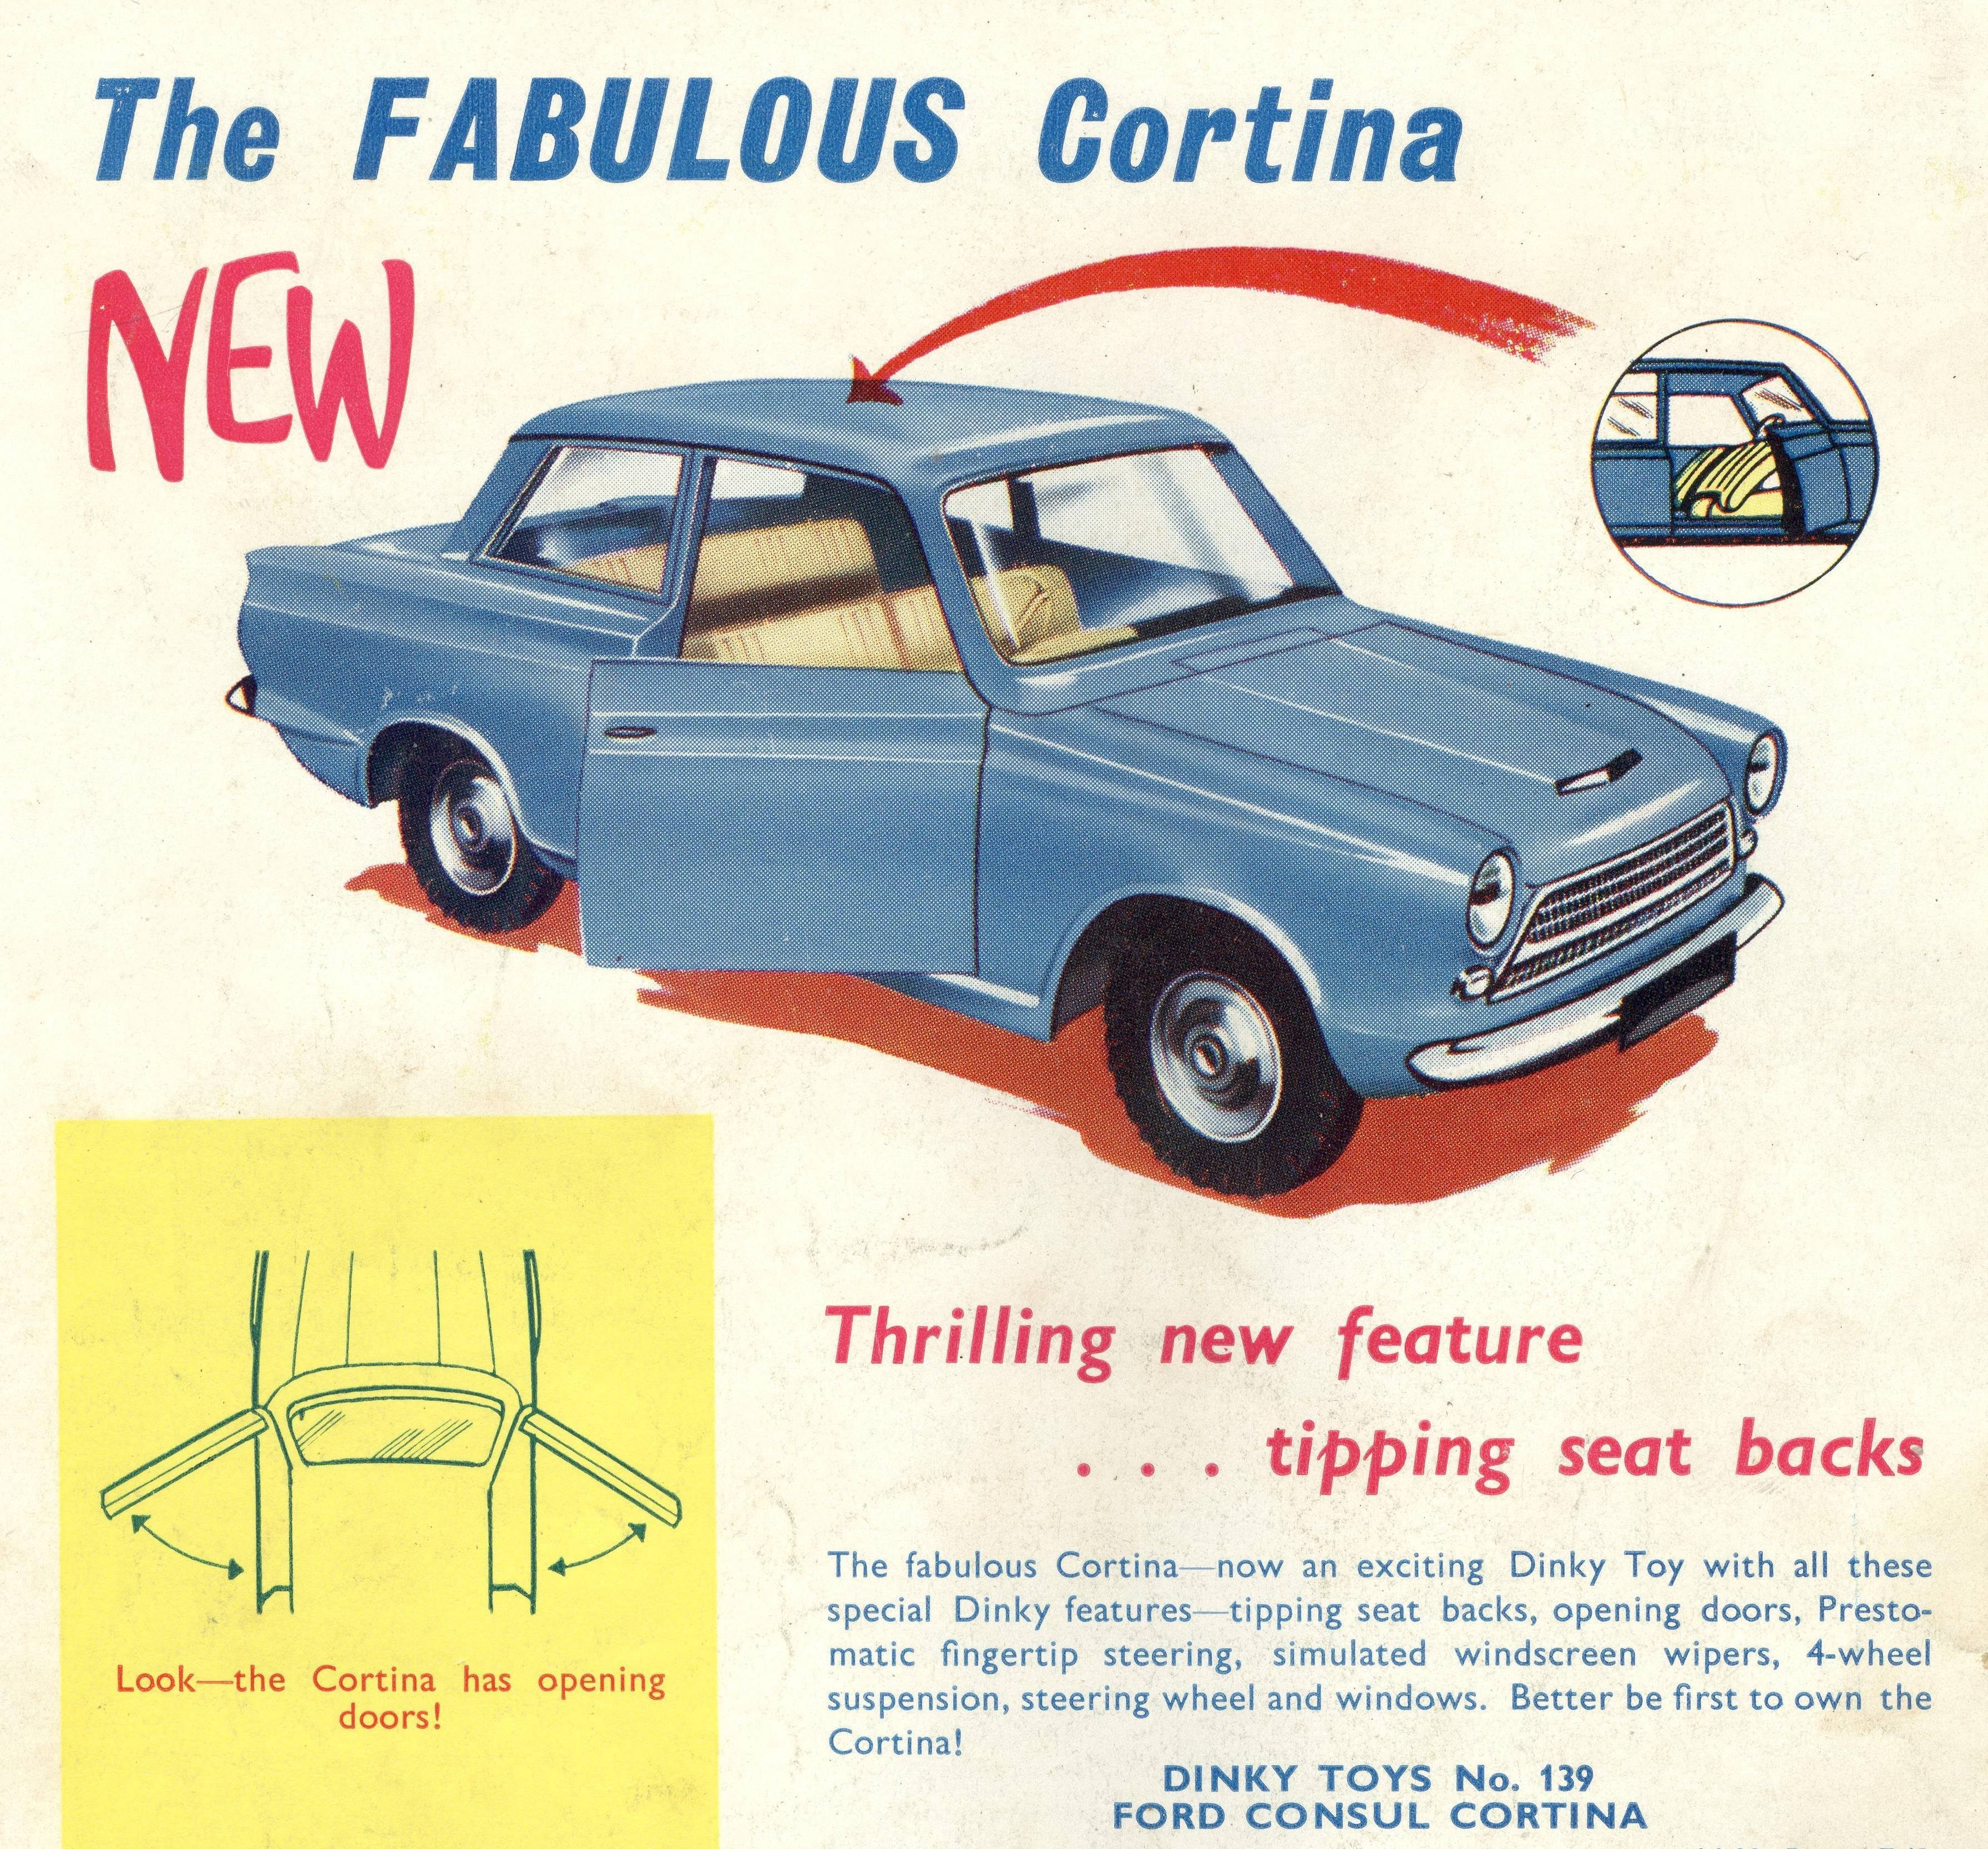 An ad for the Ford Consul Cortina Dinky car from 1963.